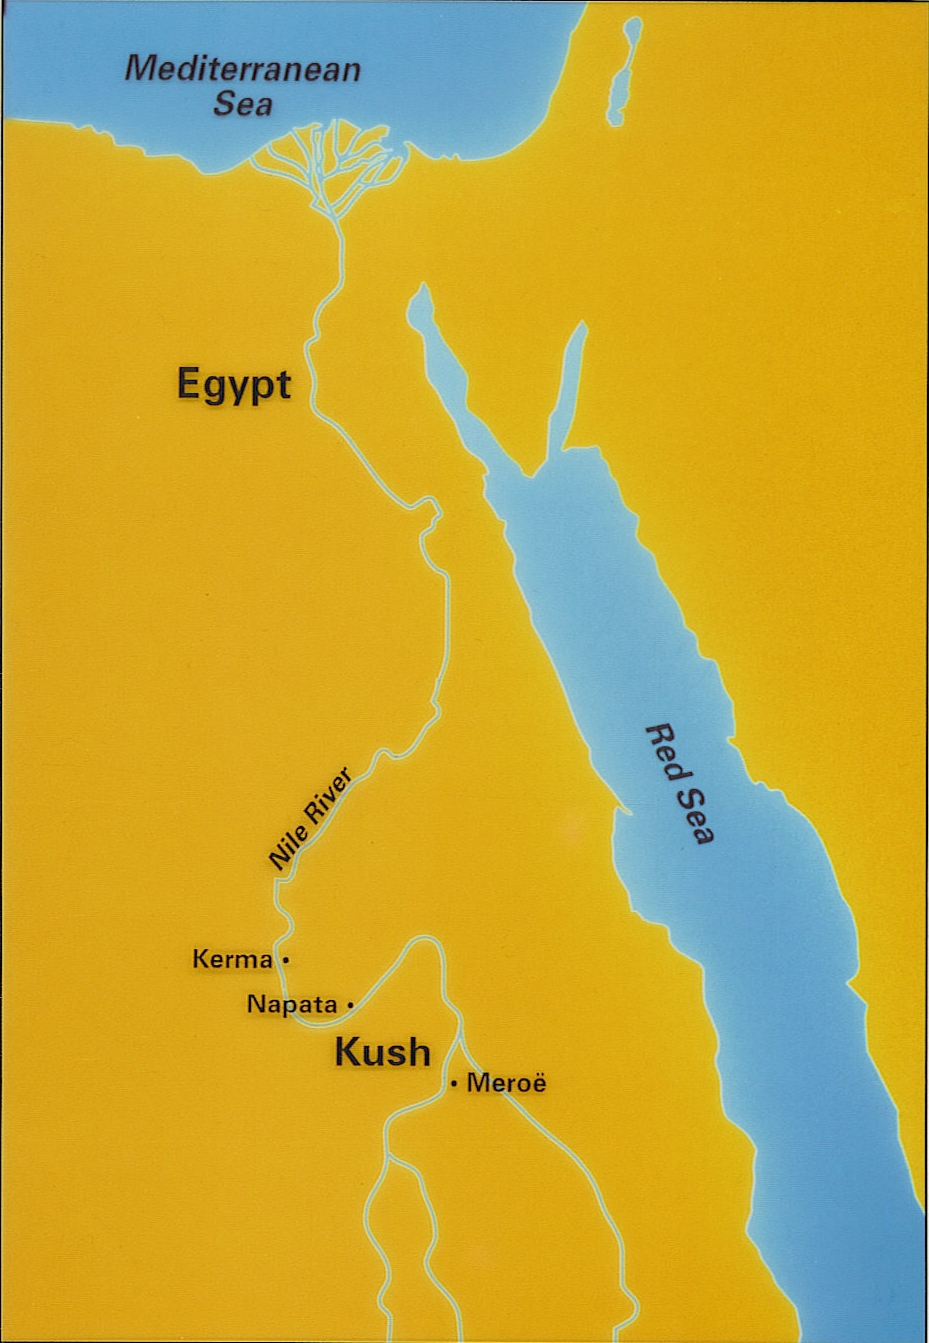 Museum Africa Origins of Museum Africa The Kingdom of Kush